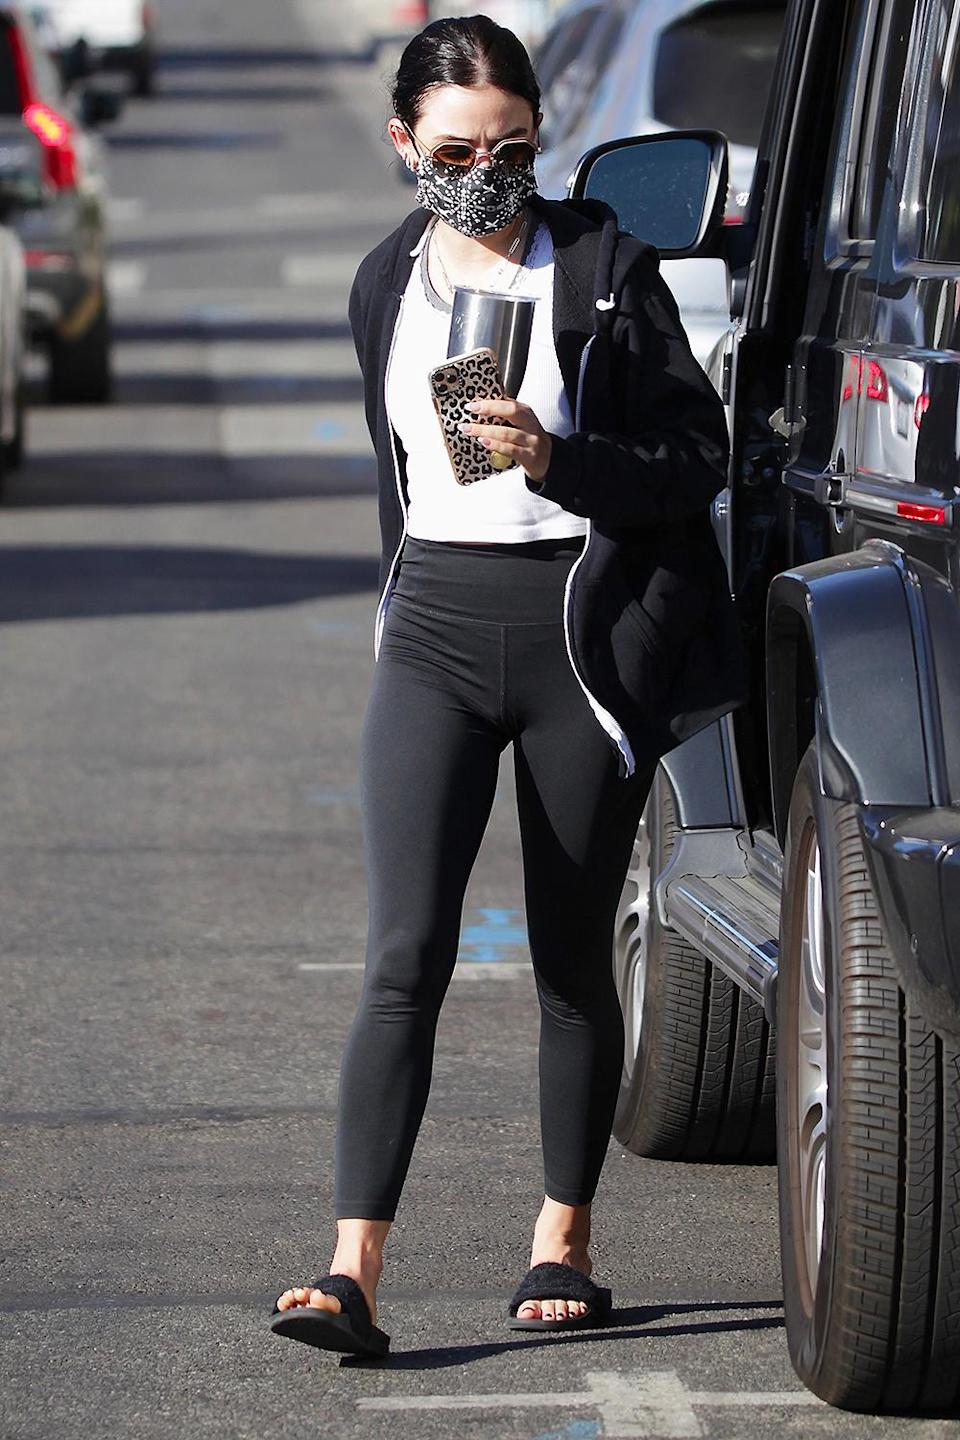 <p>Lucy Hale's leopard phone case jazzes up her all-business workout attire on the way to the gym in L.A.</p>